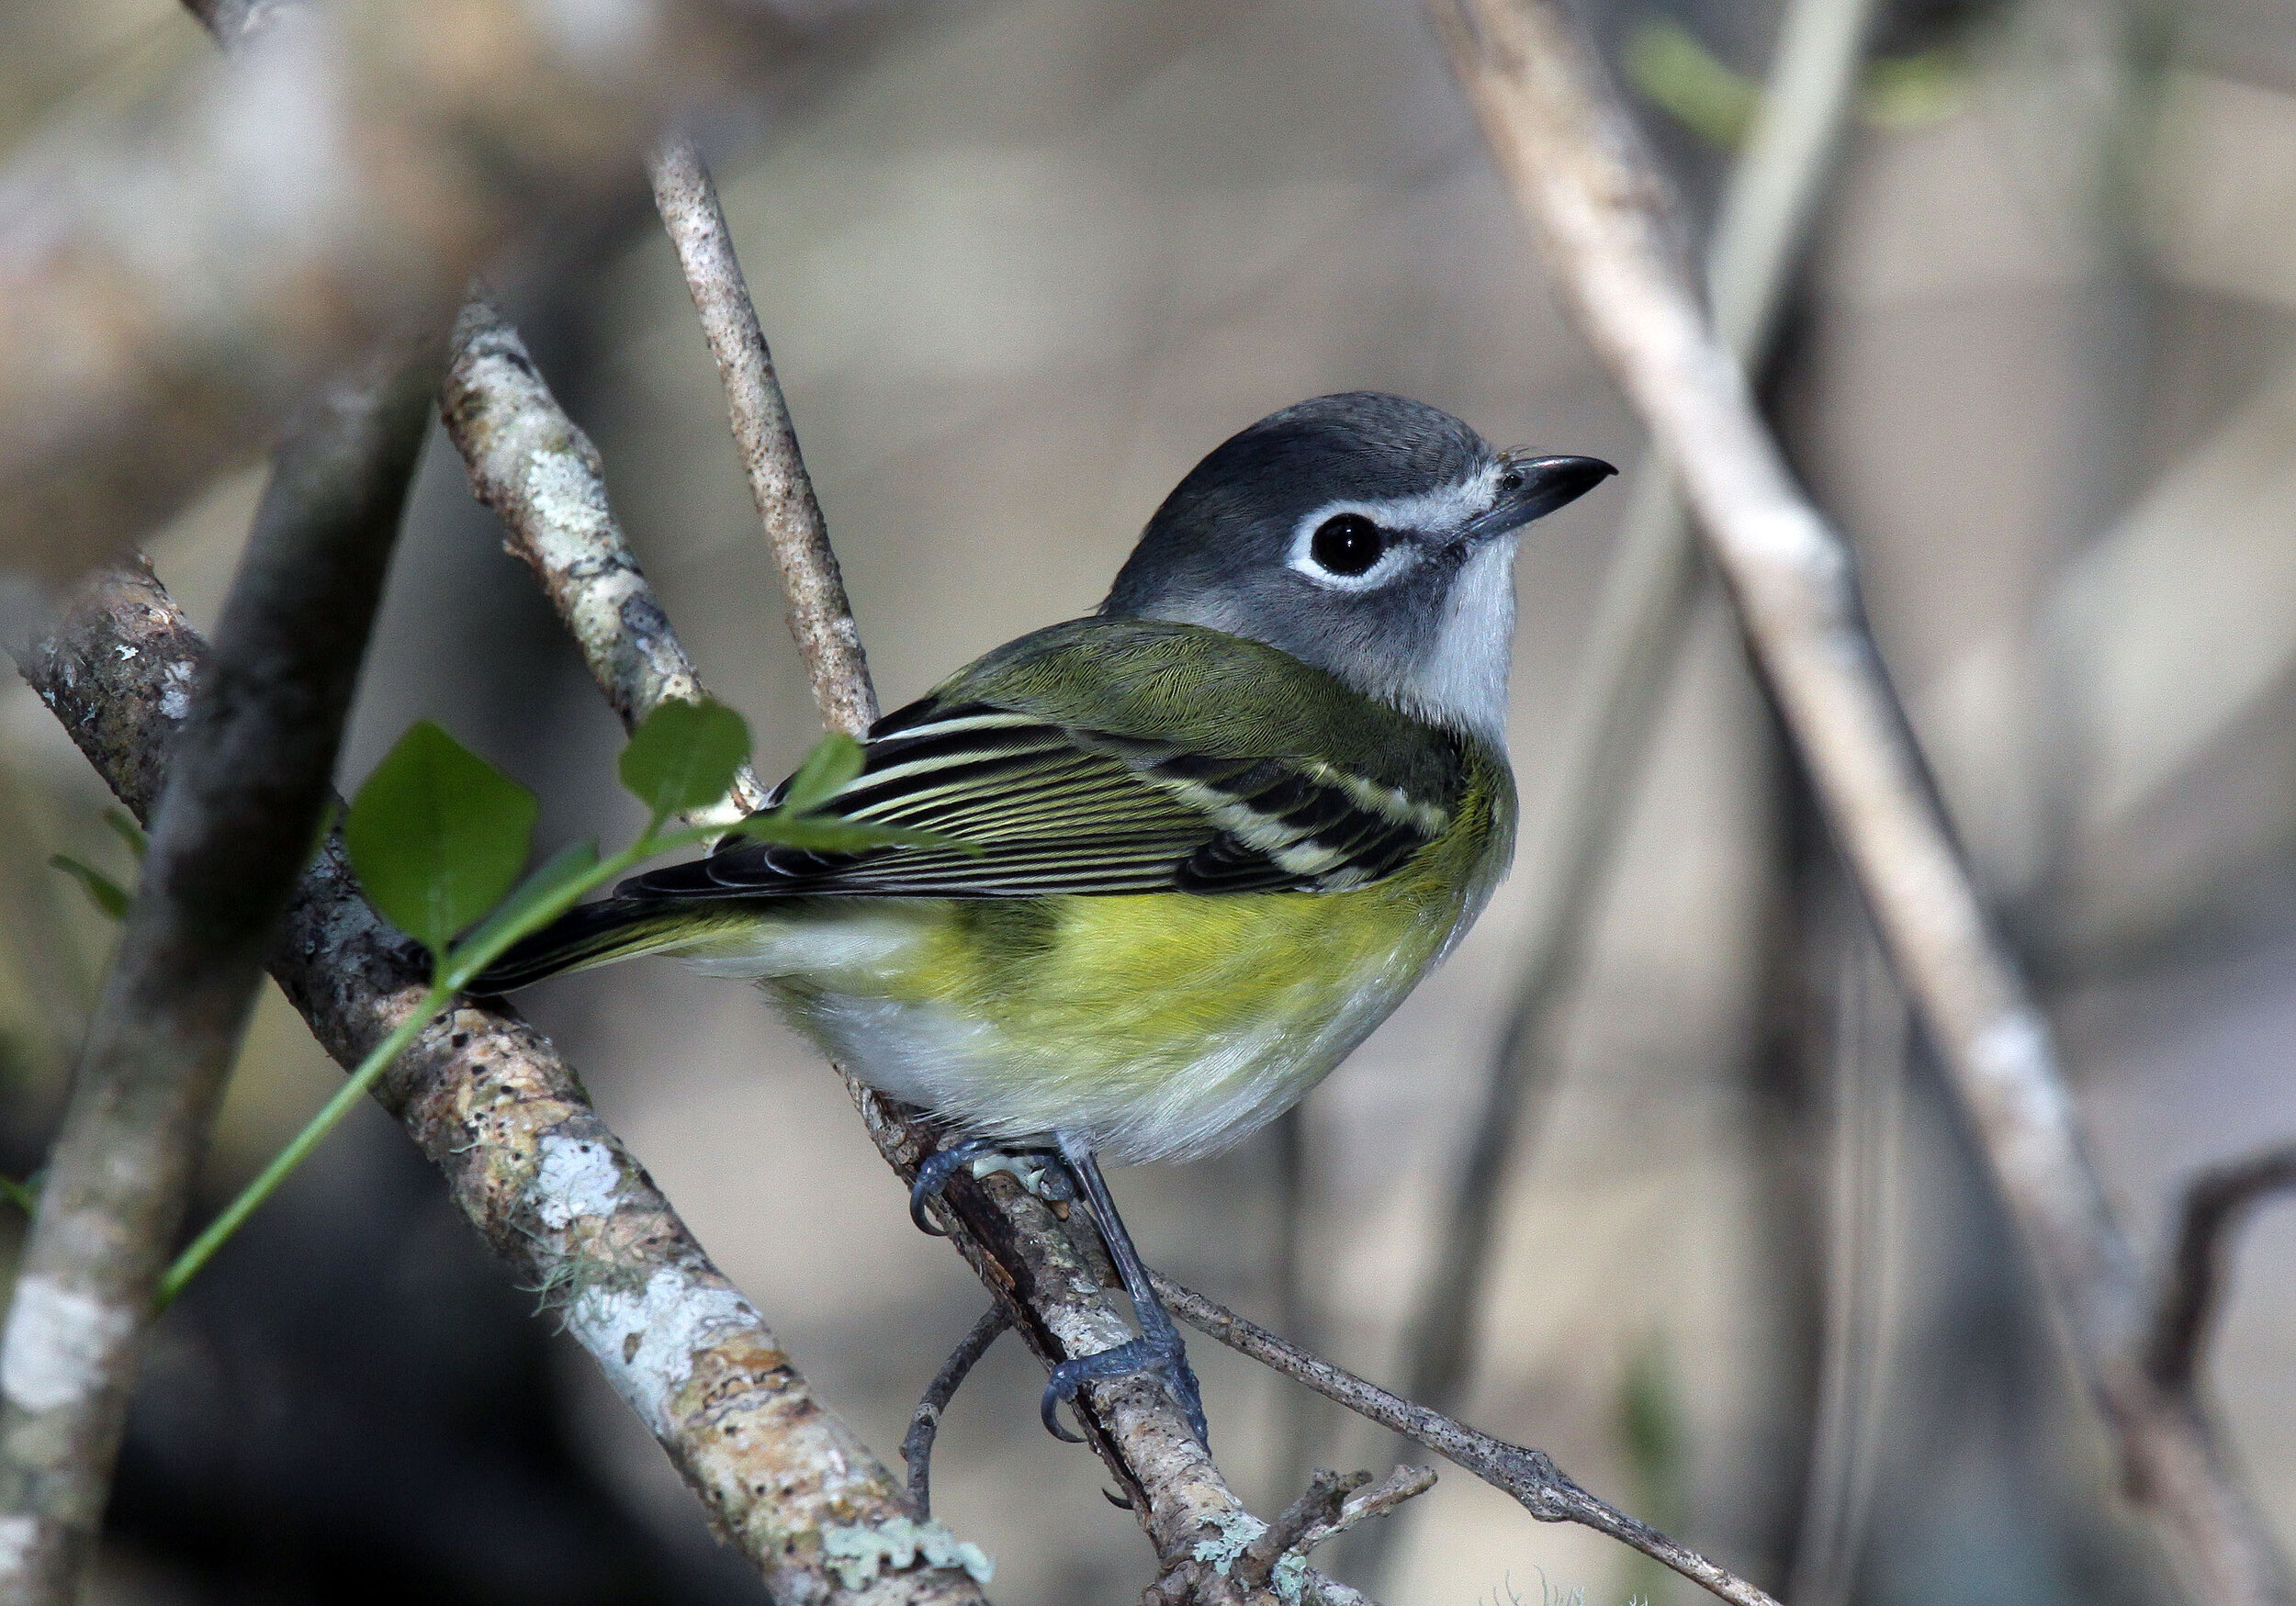 Blue-headed vireo, photo by Melanie